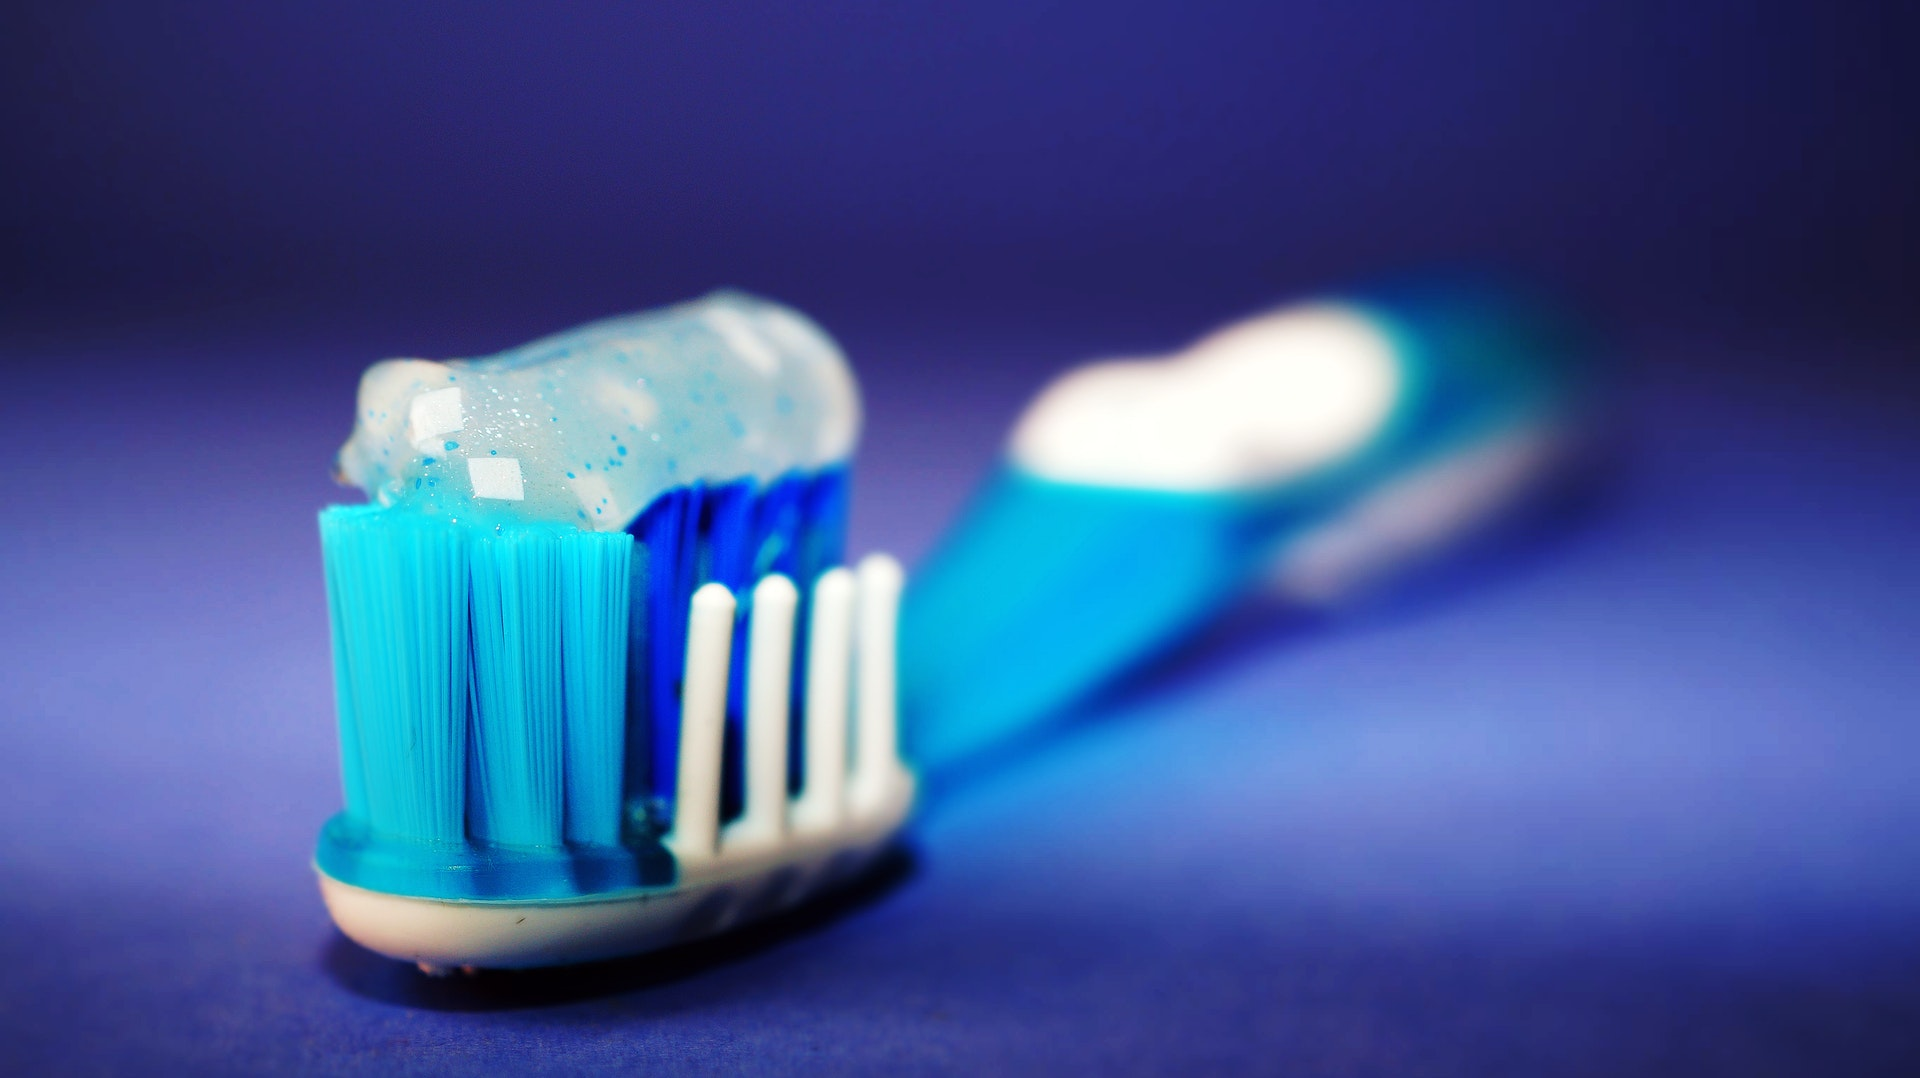 Dental - Deep Cleaning・Oral Surgery・Extractions・Composites・Crowns and Bridges・Exams and X-Rays・Root Canals